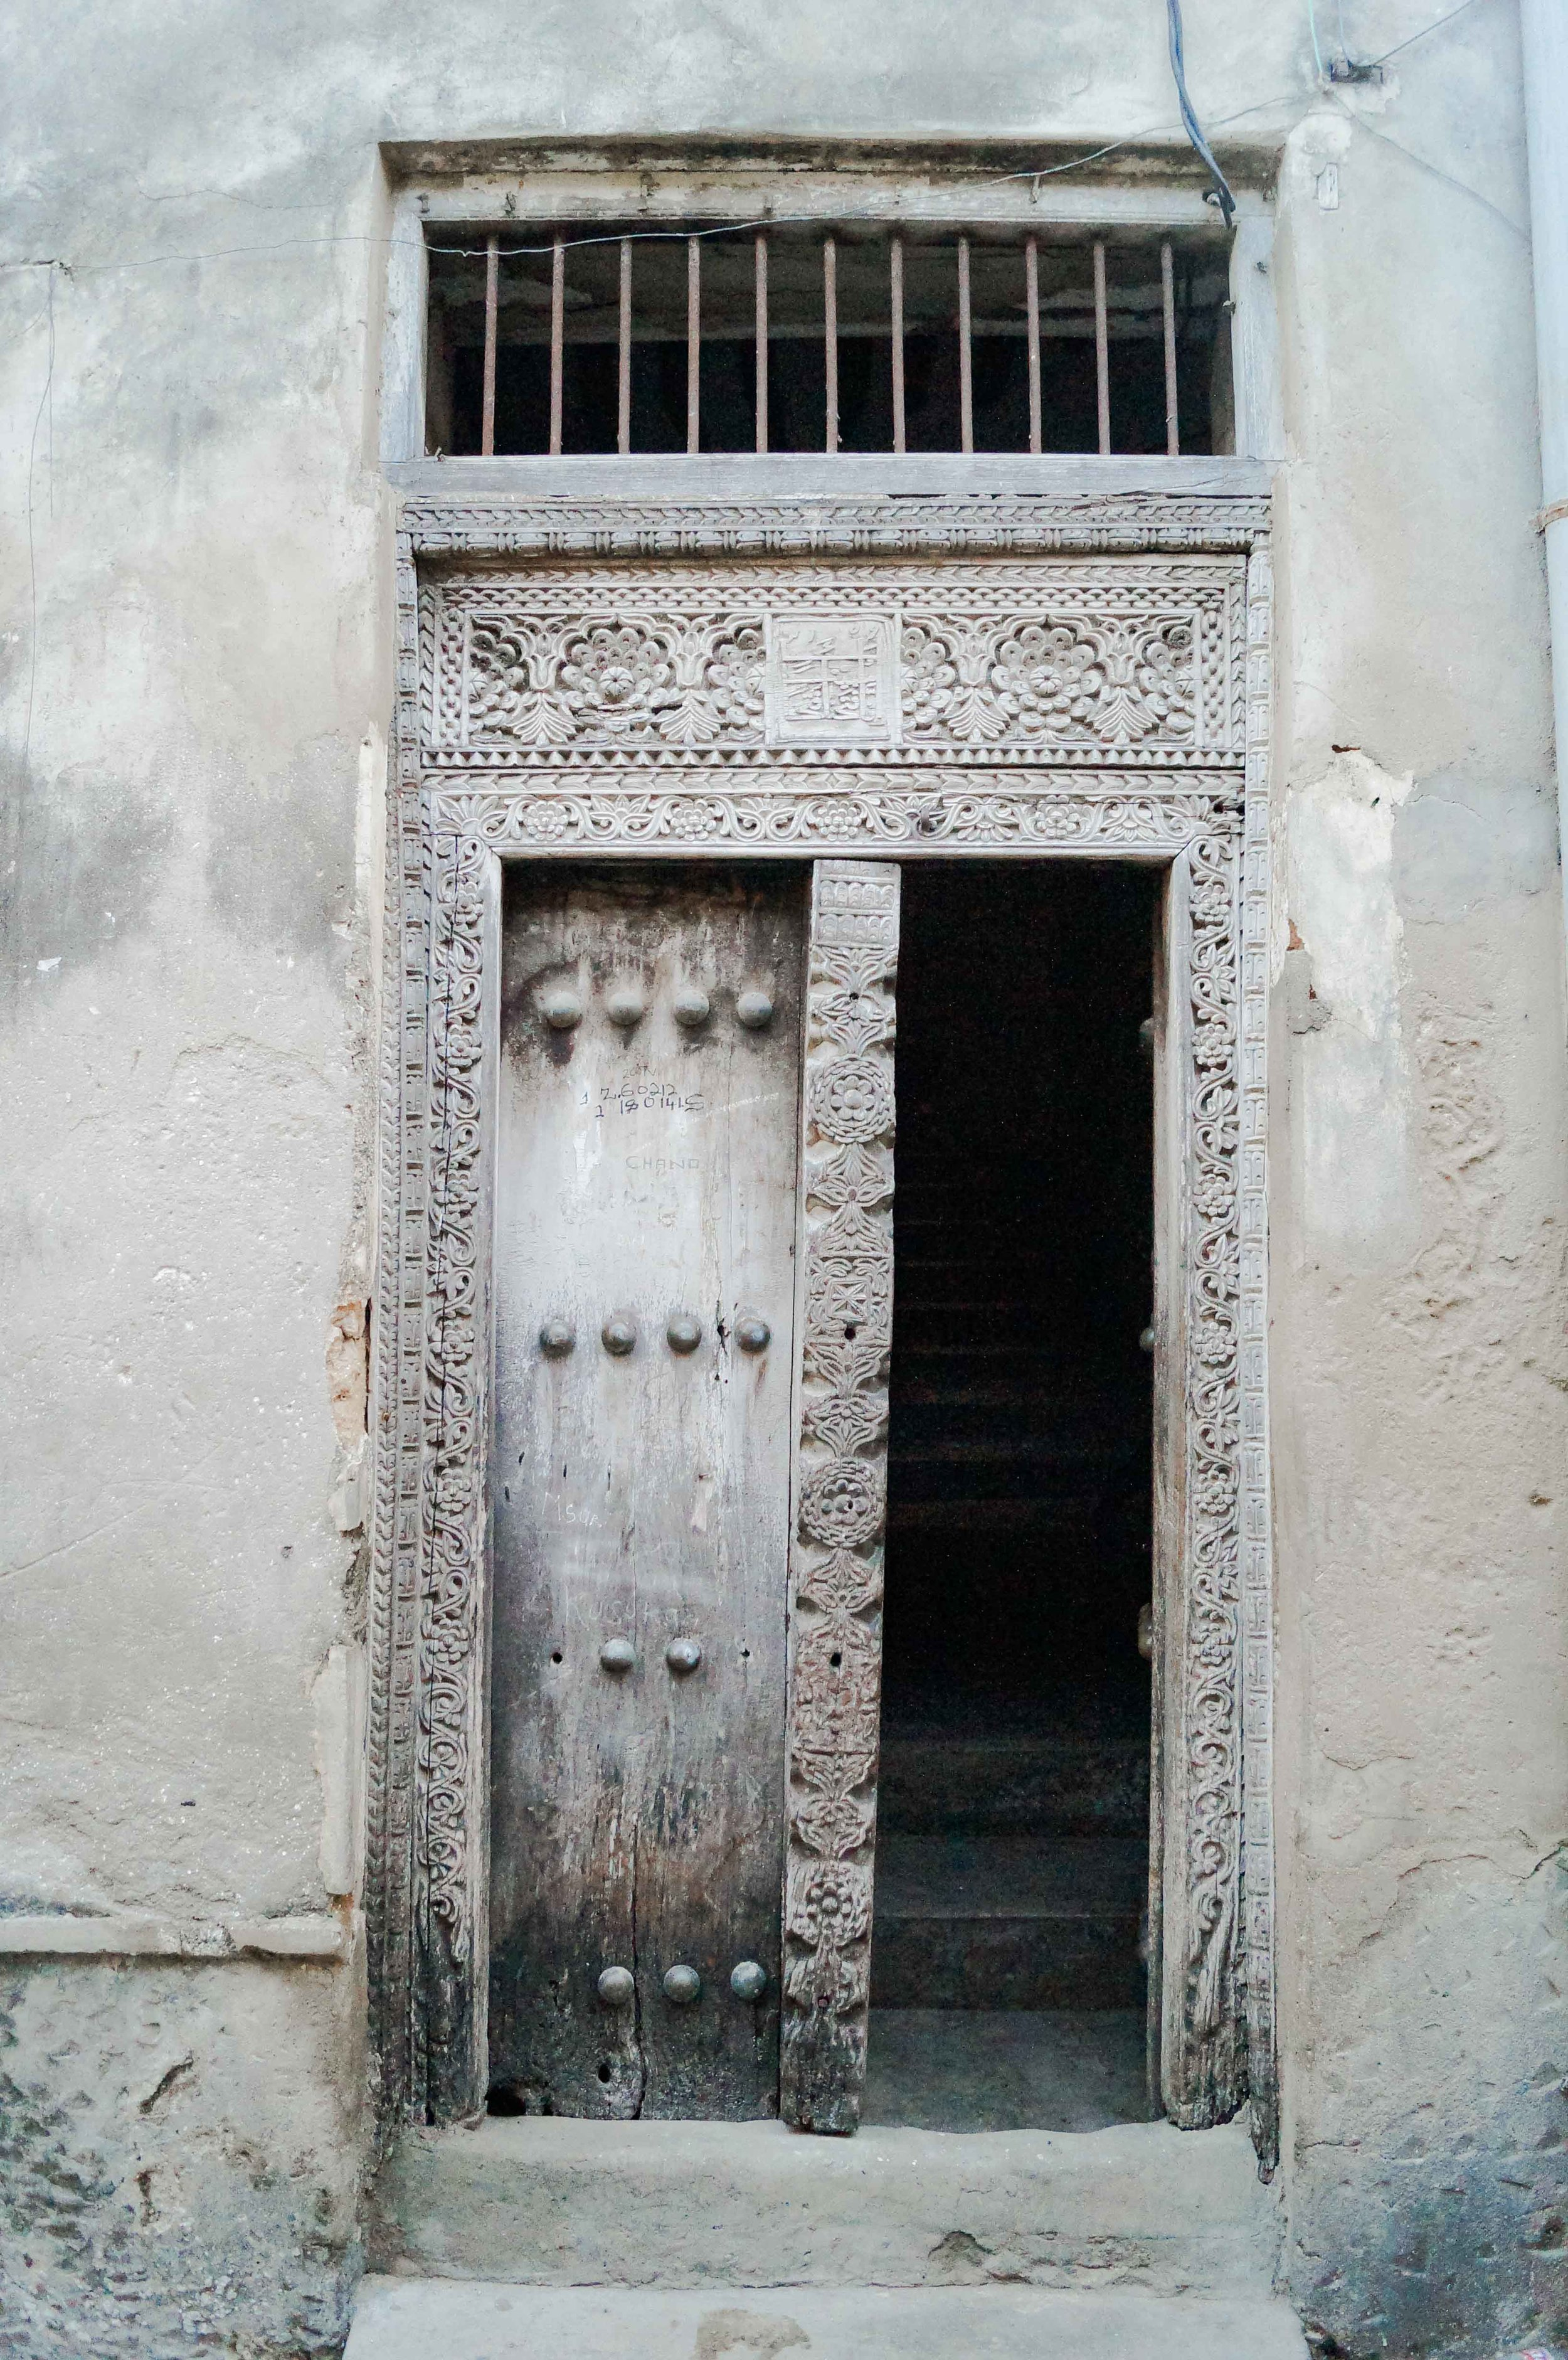 The most well-known feature of Zanzibari houses are the finely decorated wooden doors, with rich carvings and bas-reliefs, sometimes with big brass studs of Indian tradition